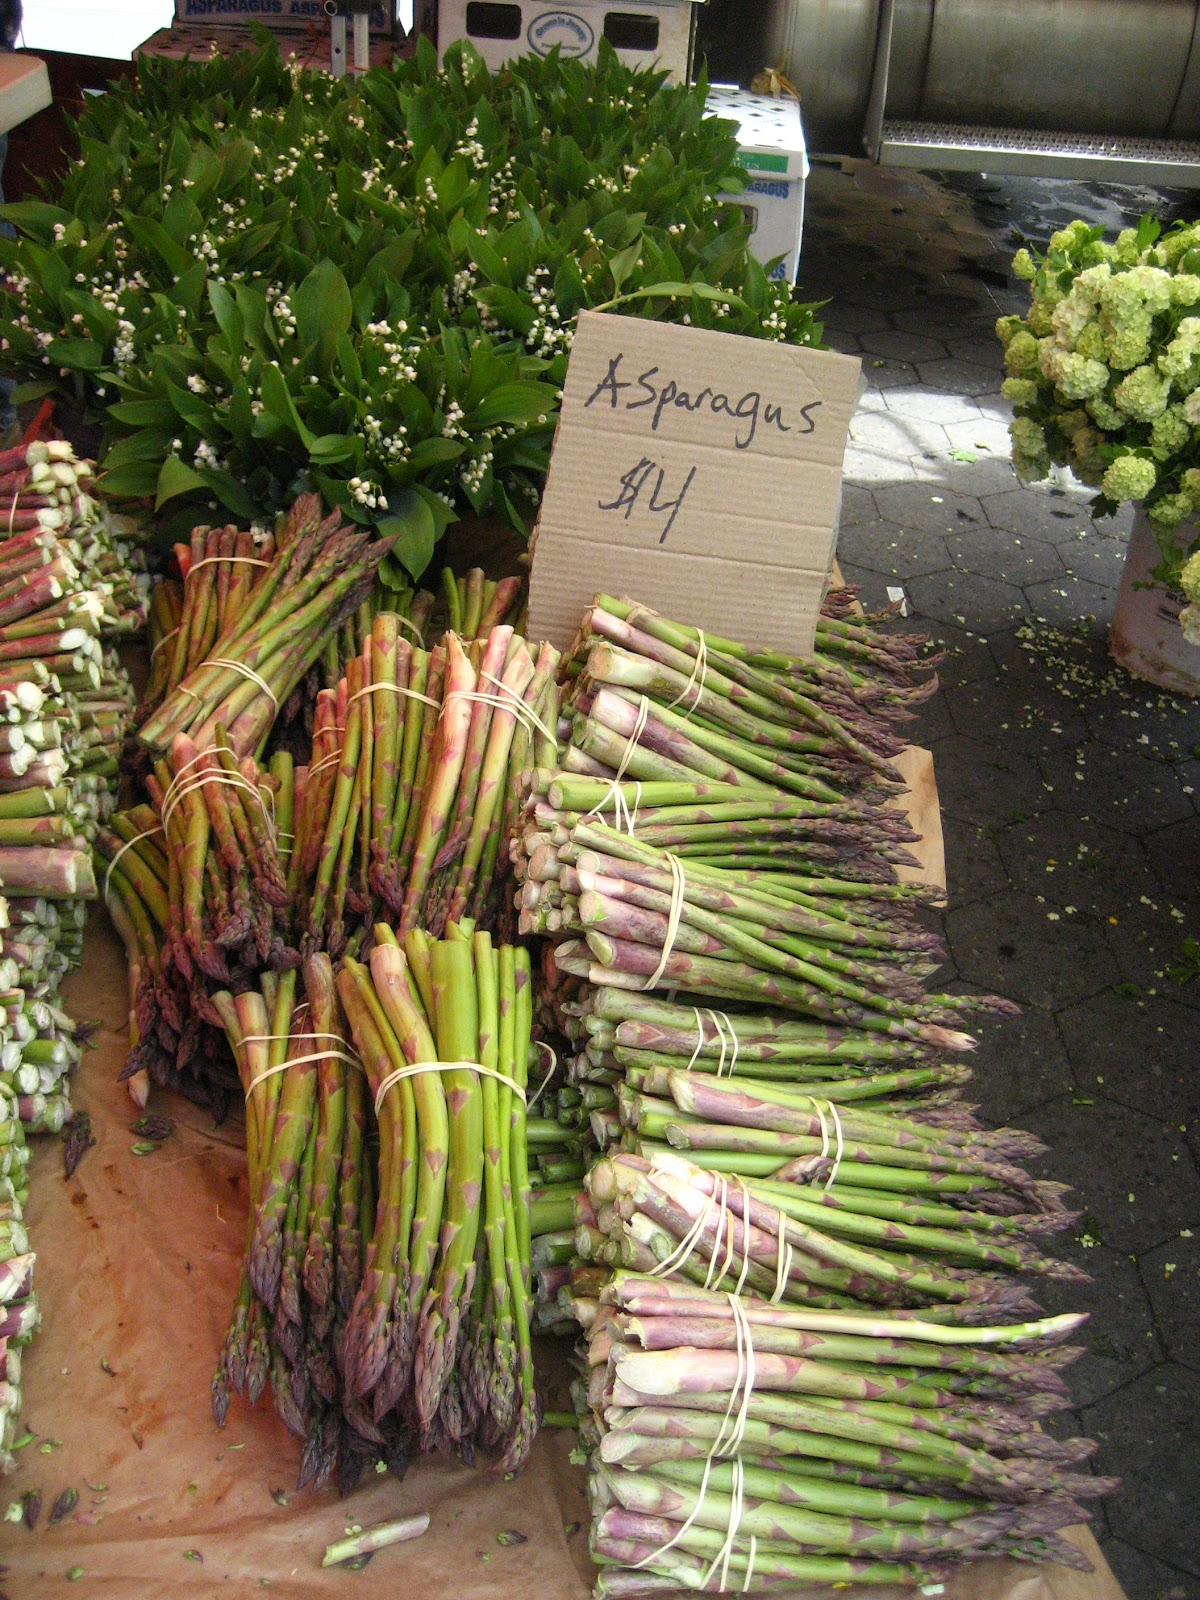 You Know How I Know? Because Asparagus Has Popped Up At The Local Farmer's  Market I'm Starting To See Rhubarb In The Stands Again